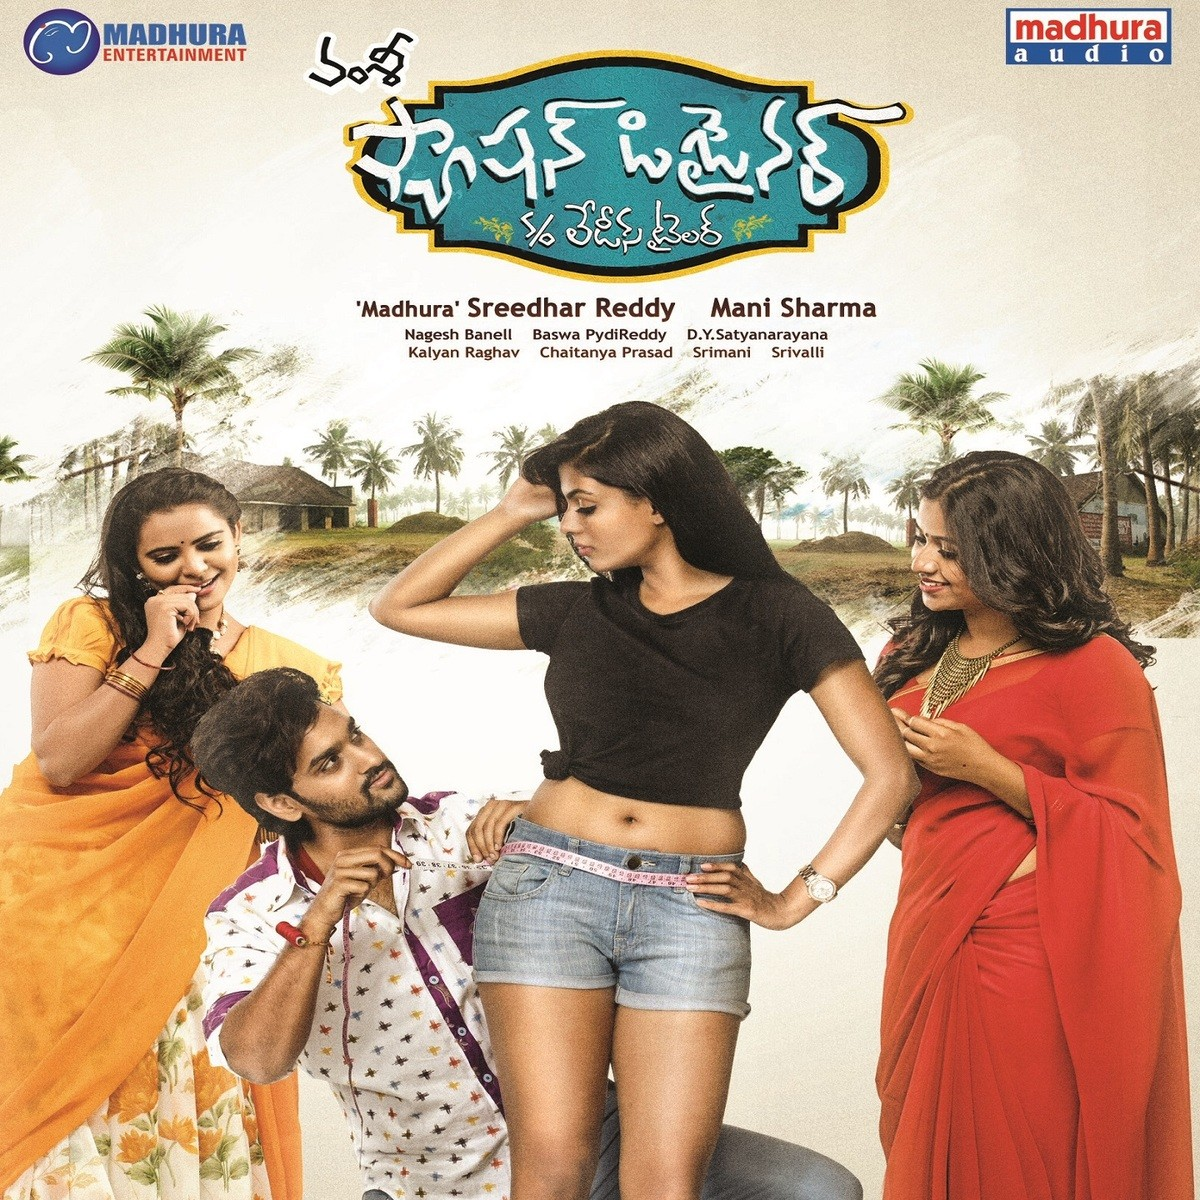 Fashion Designer S O Ladies Tailor Original Motion Picture Soundtrack Songs Download Fashion Designer S O Ladies Tailor Original Motion Picture Soundtrack Mp3 Telugu Songs Online Free On Gaana Com